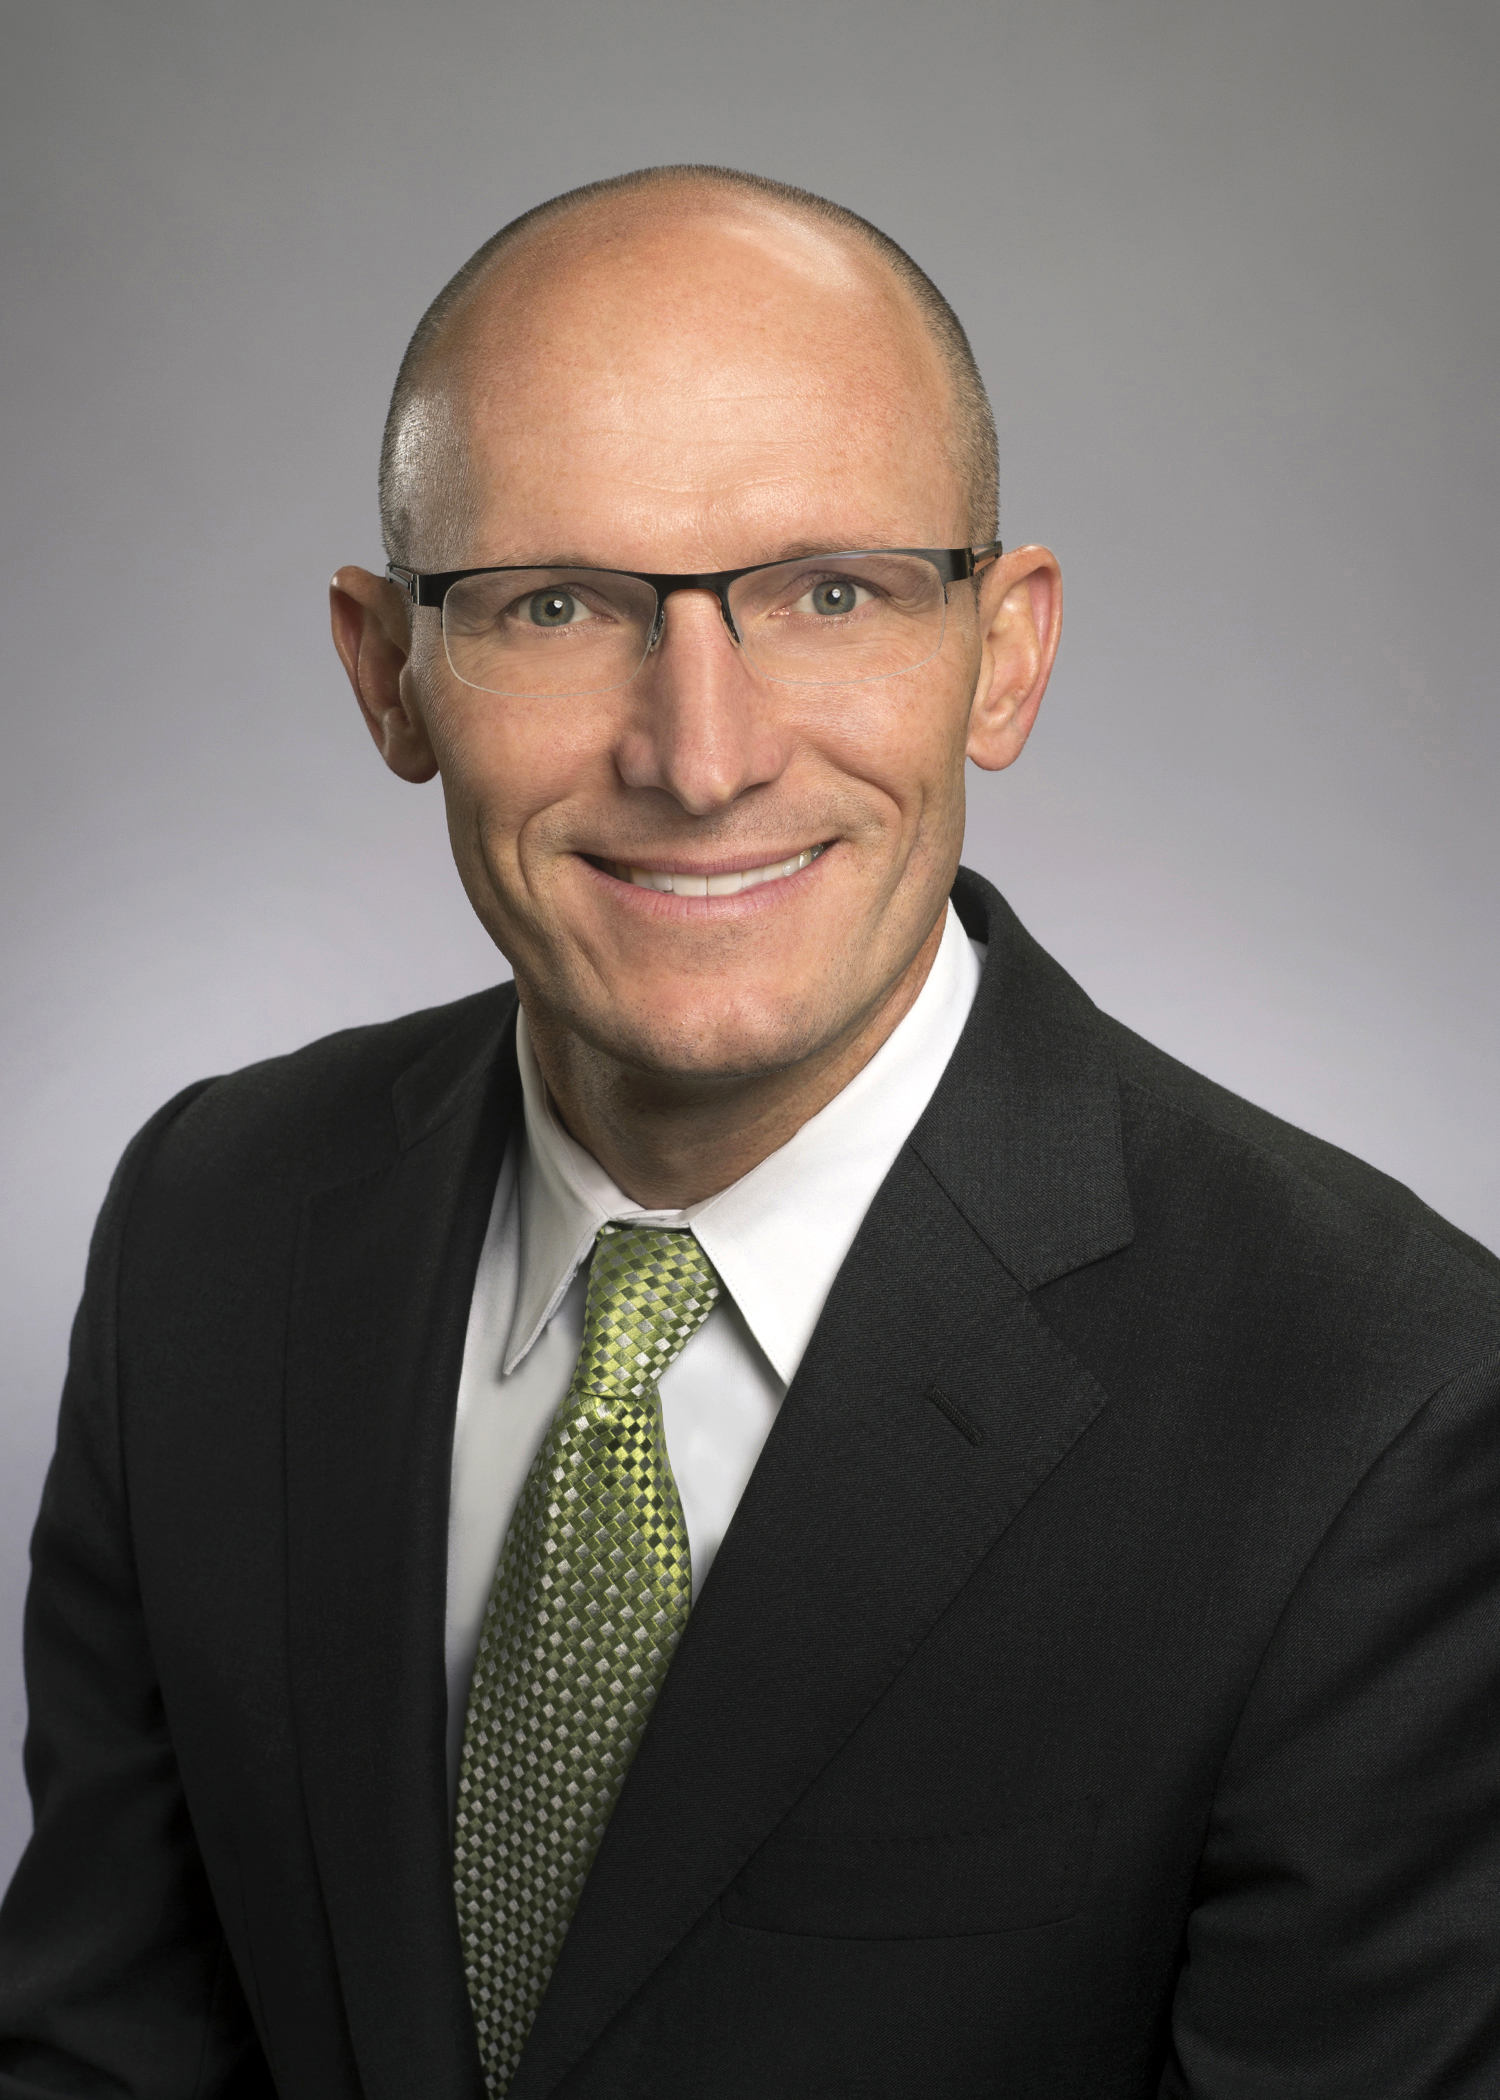 Bryce Gartland, MD,  Hospital Group President, Emory Healthcare